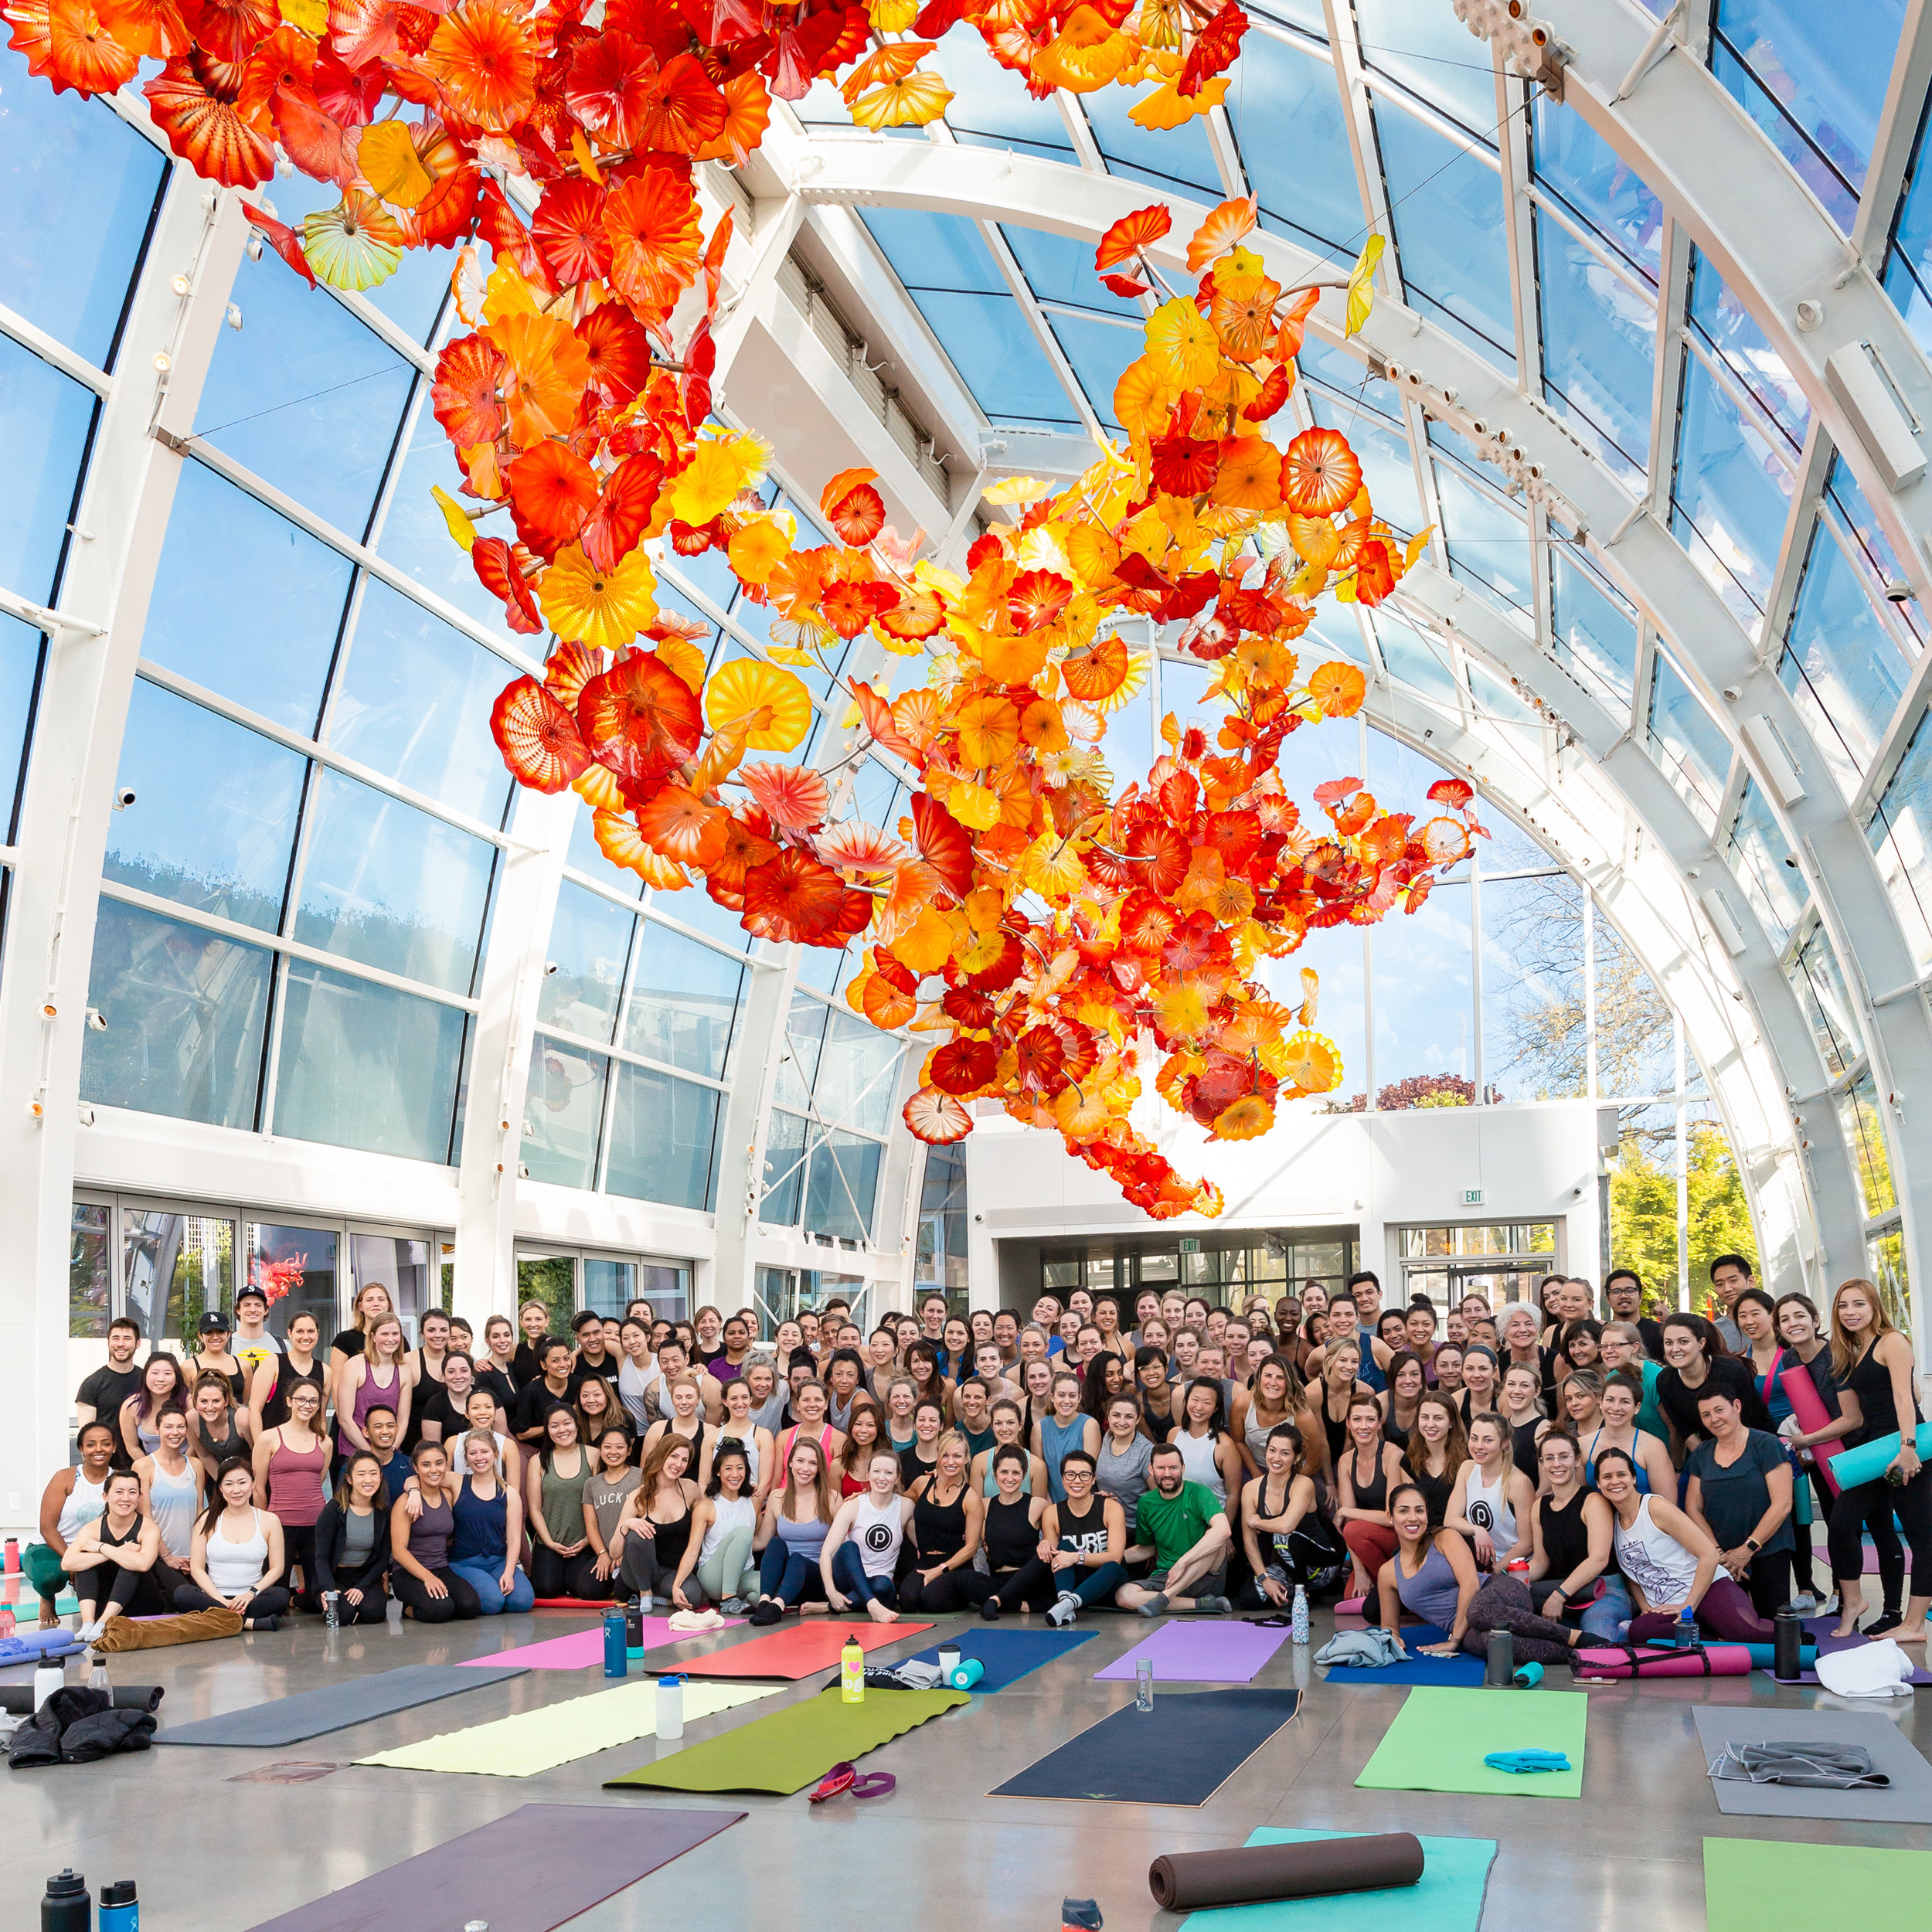 Pure Barre Chihuly - April 2019